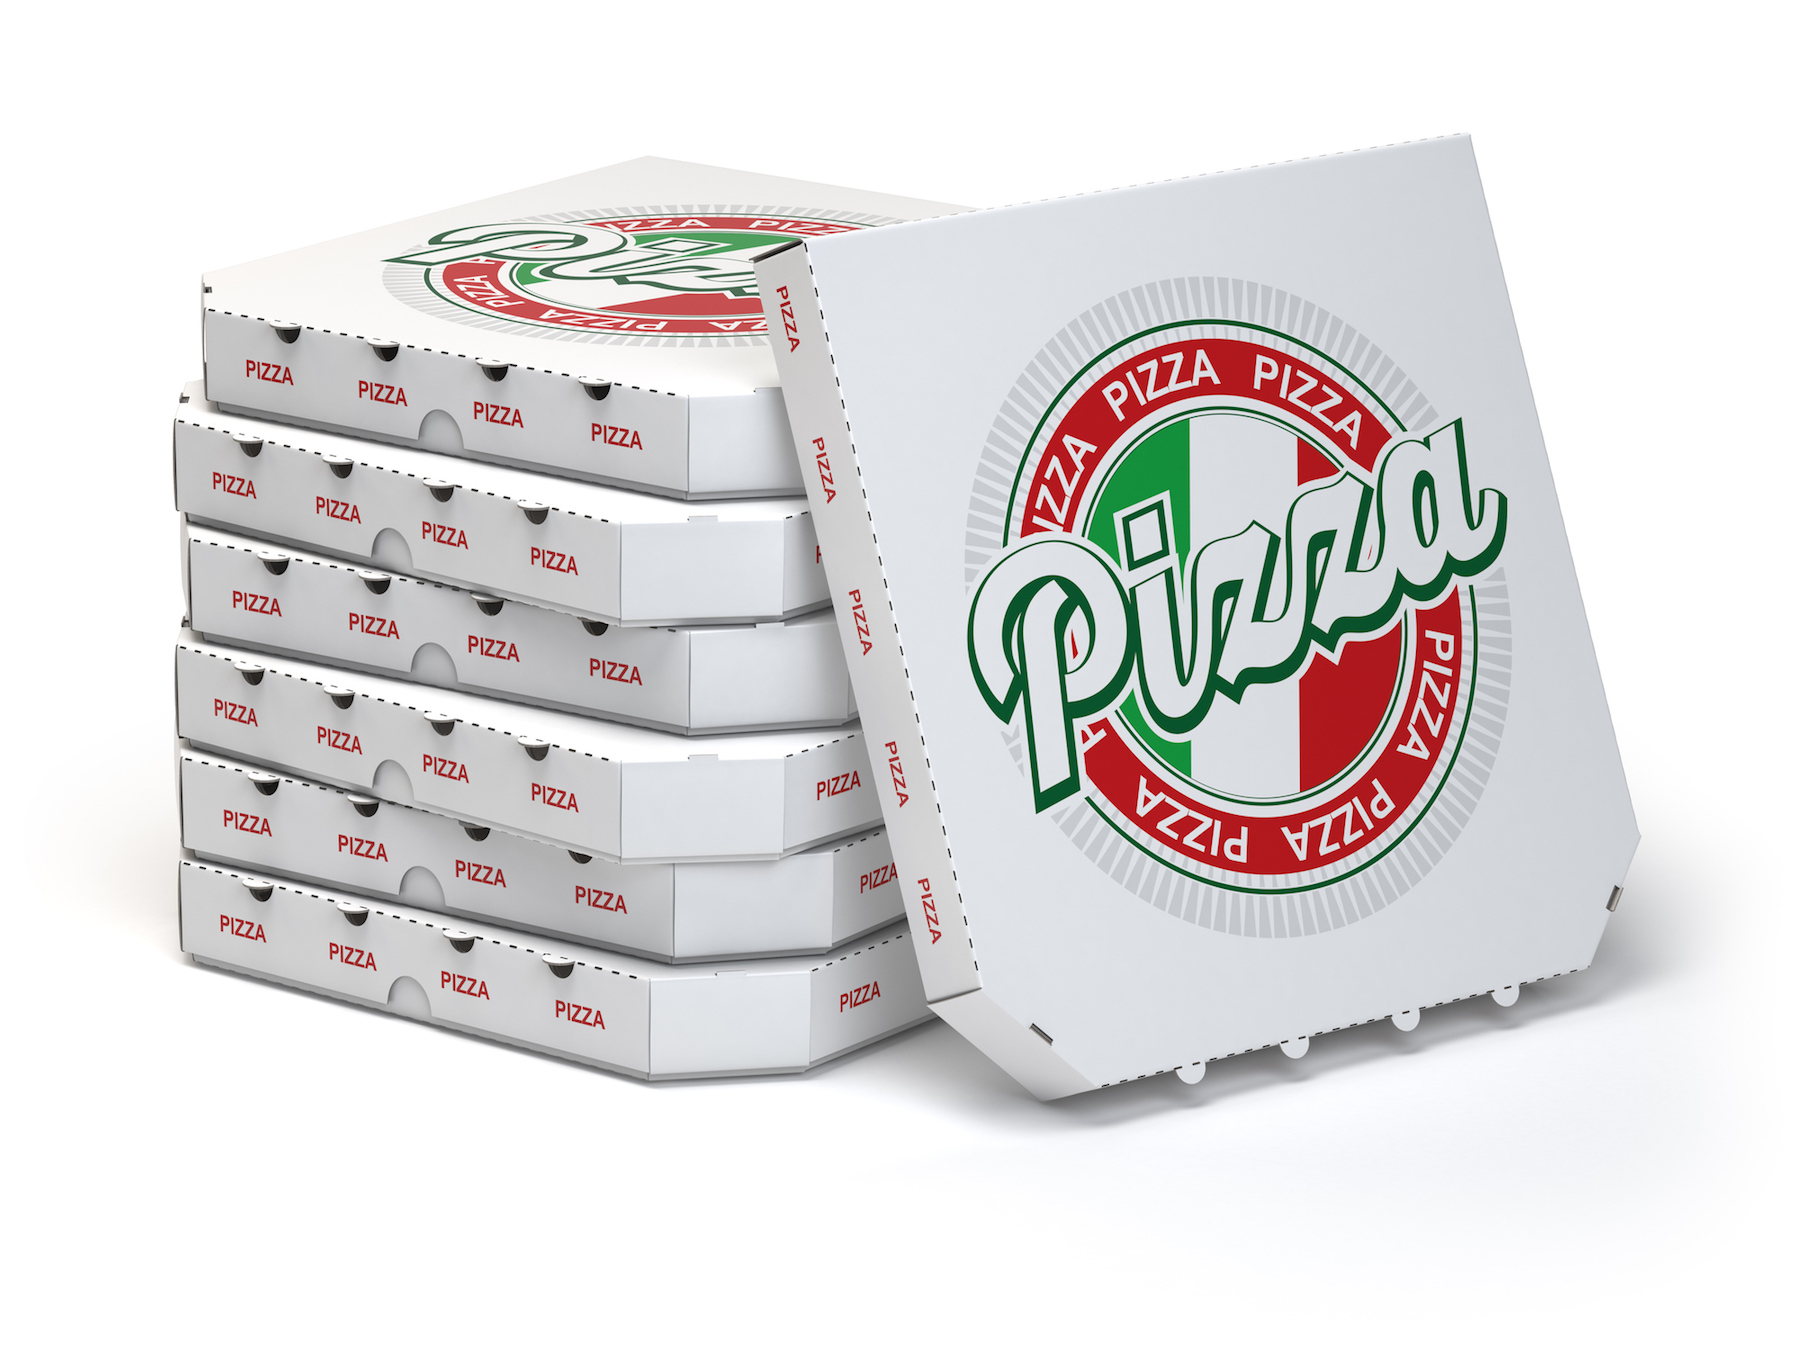 Pile of pizza boxes